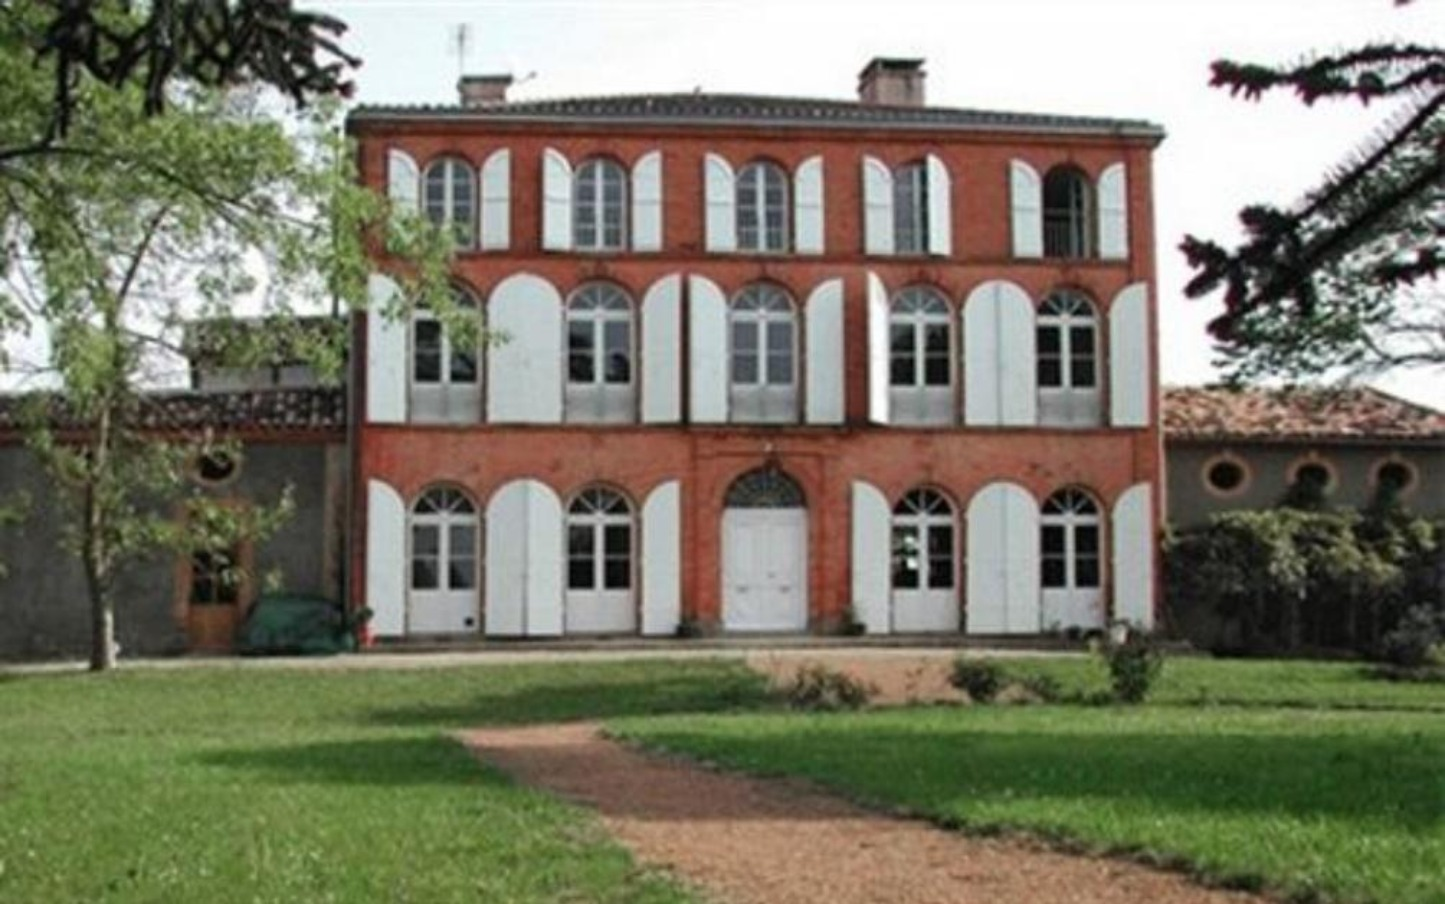 A large brick building with grass in front of a house at Au Chateau.